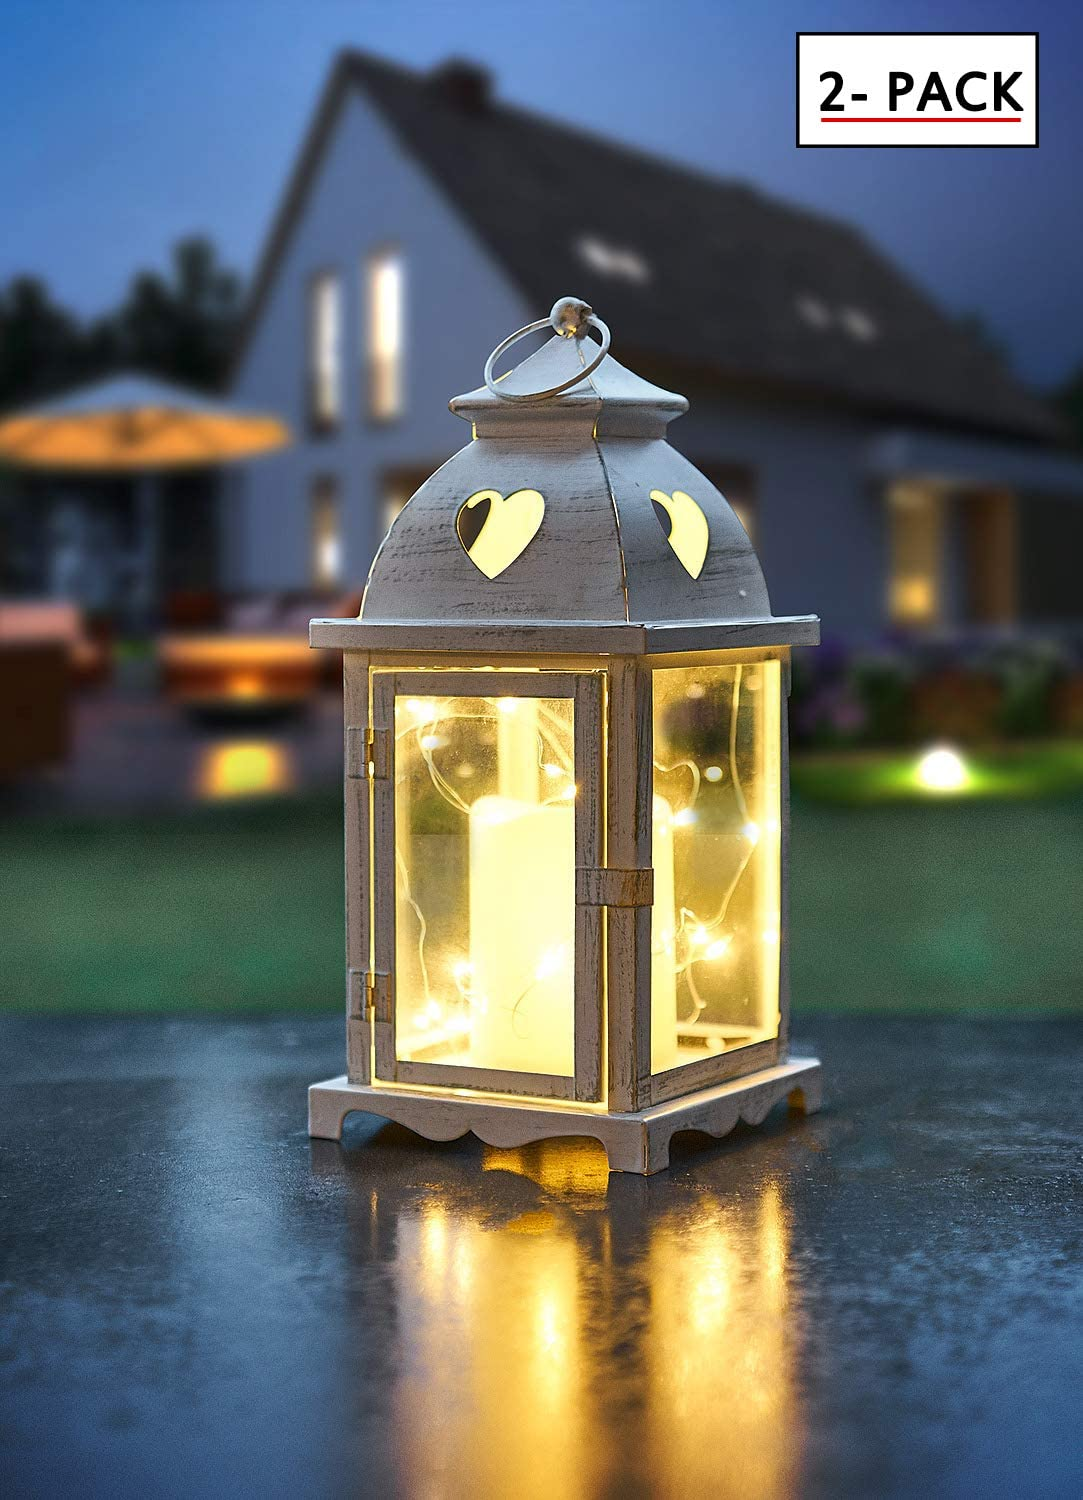 """Decanit 14"""" Tall White Golden Brushed Vintage Metal Flameless Decorative Candle Lantern with 6 Hours Timer 20 Led Copper Wire String Lights - Hanging for Indoor Outdoor-Battery Operated (Style2, 2pcs)"""